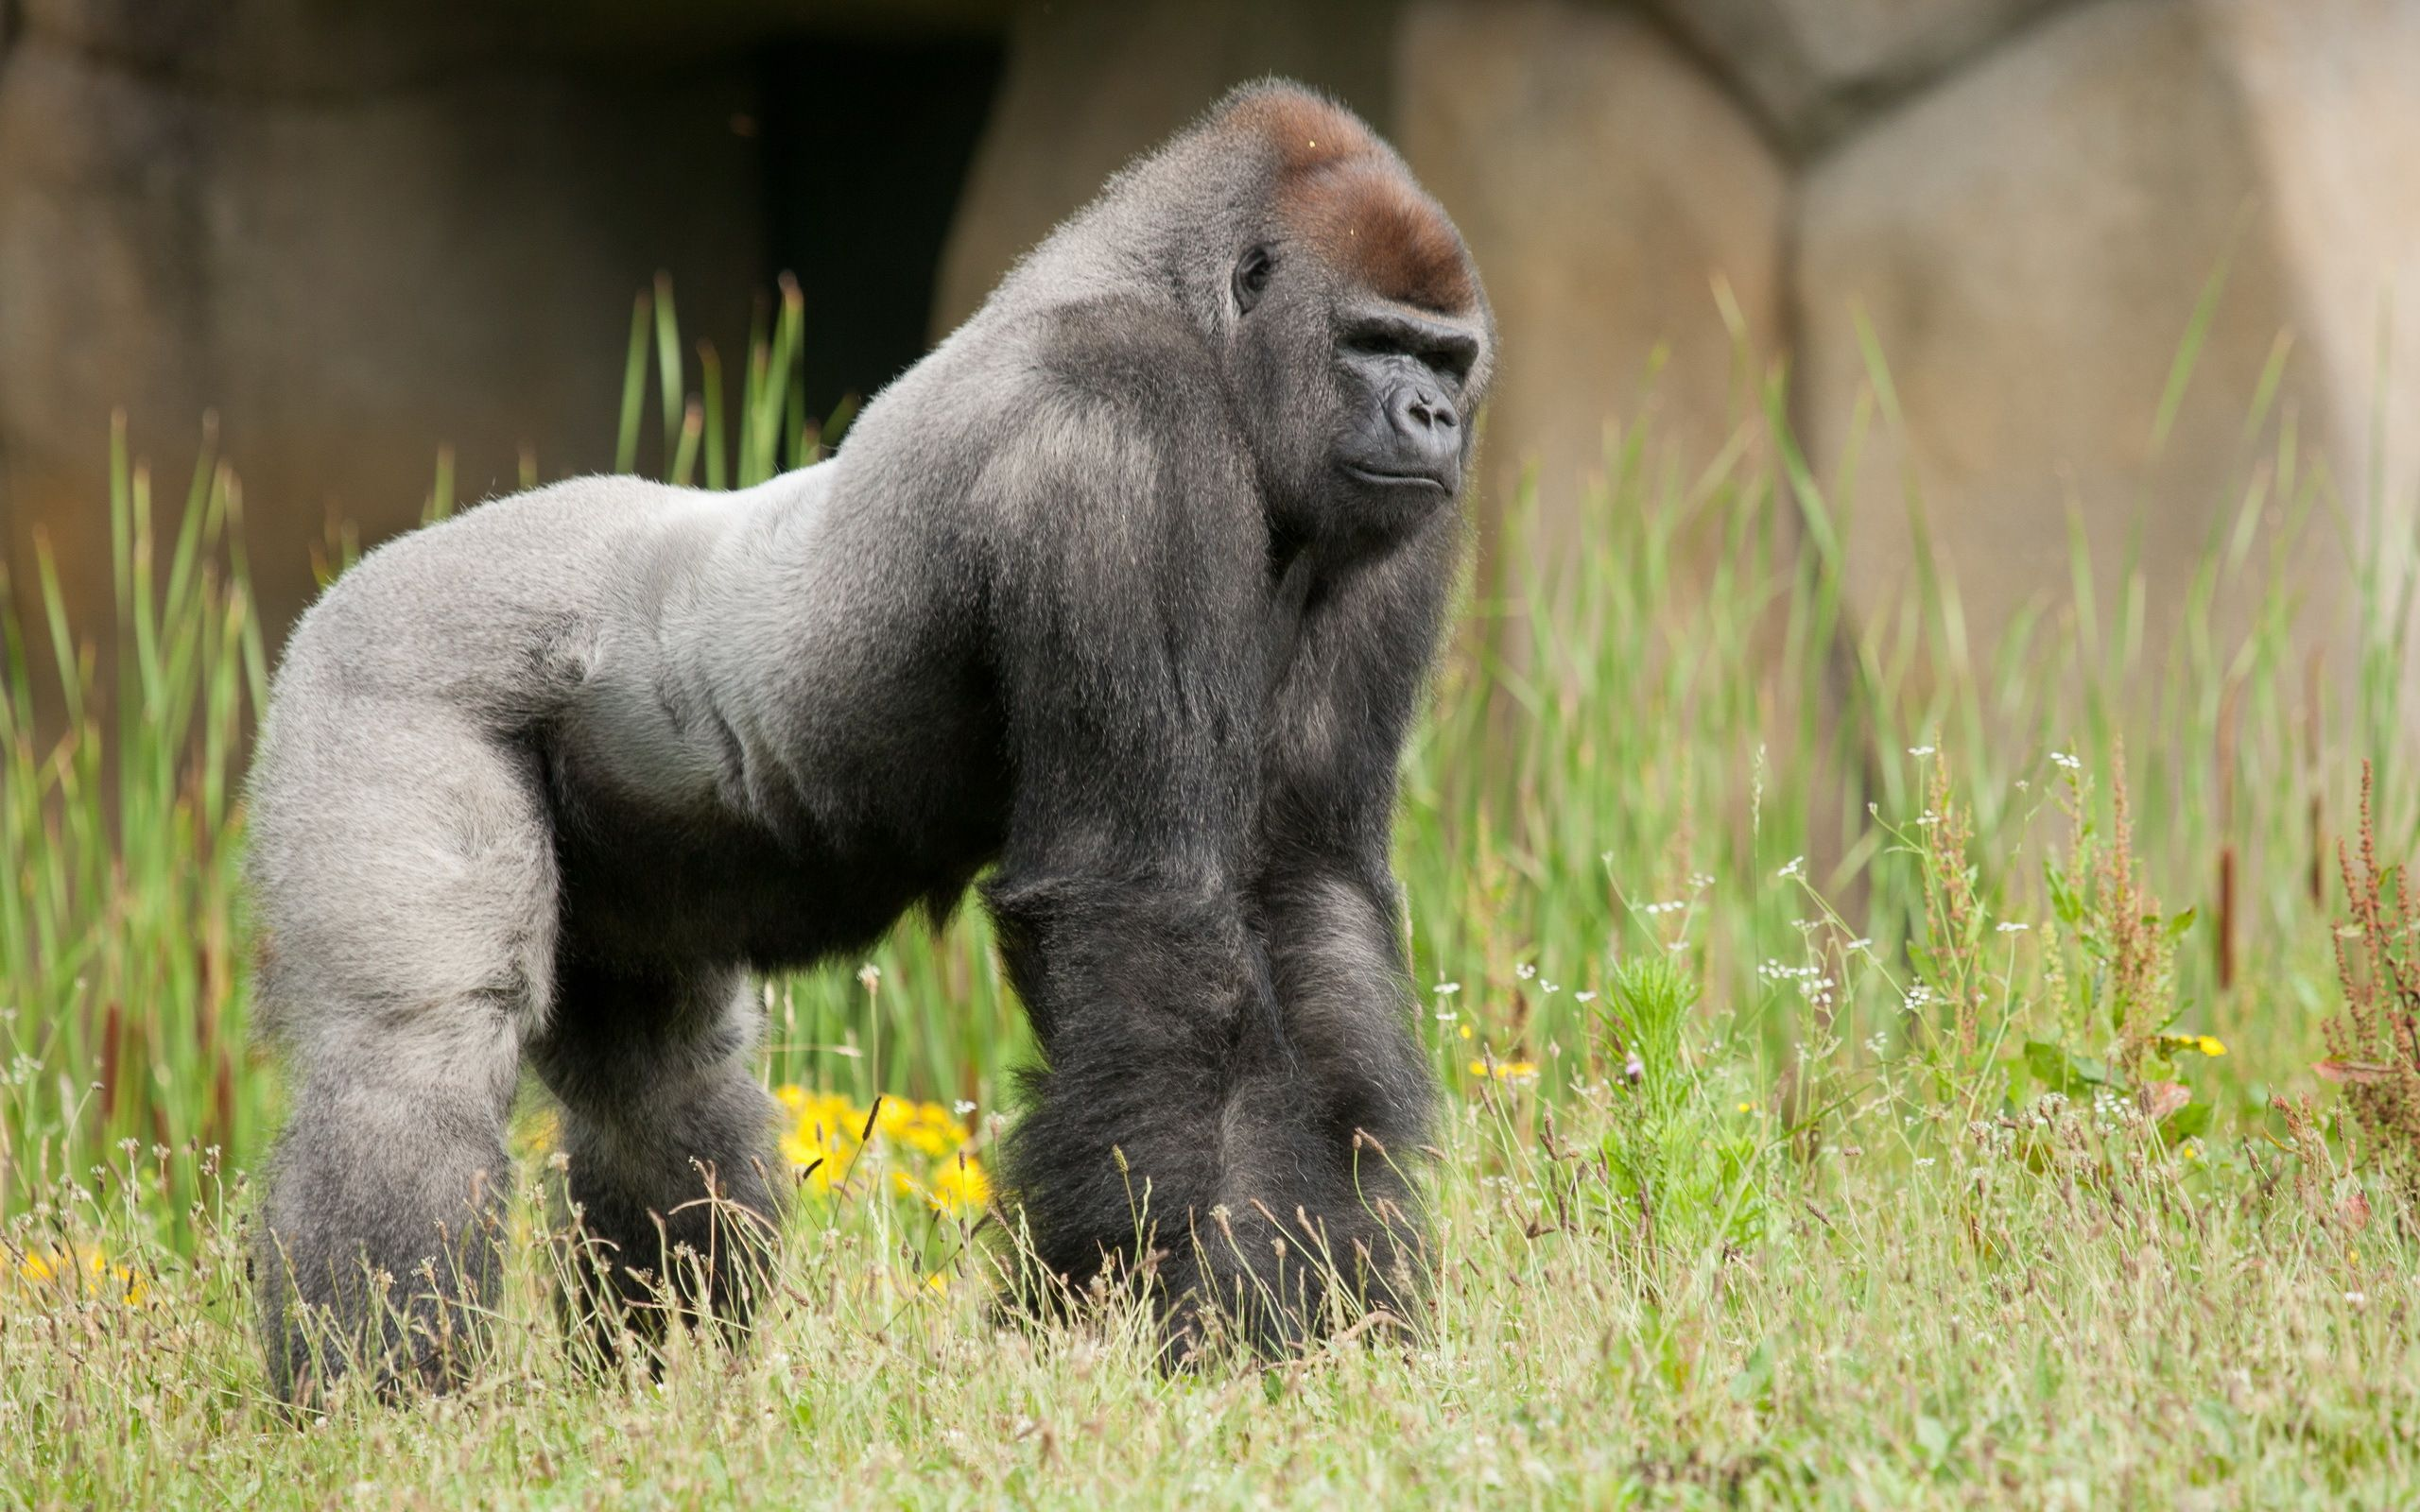 79 Gorilla Hd Wallpapers Backgrounds Wallpaper Abyss Gorille Animaux Savane